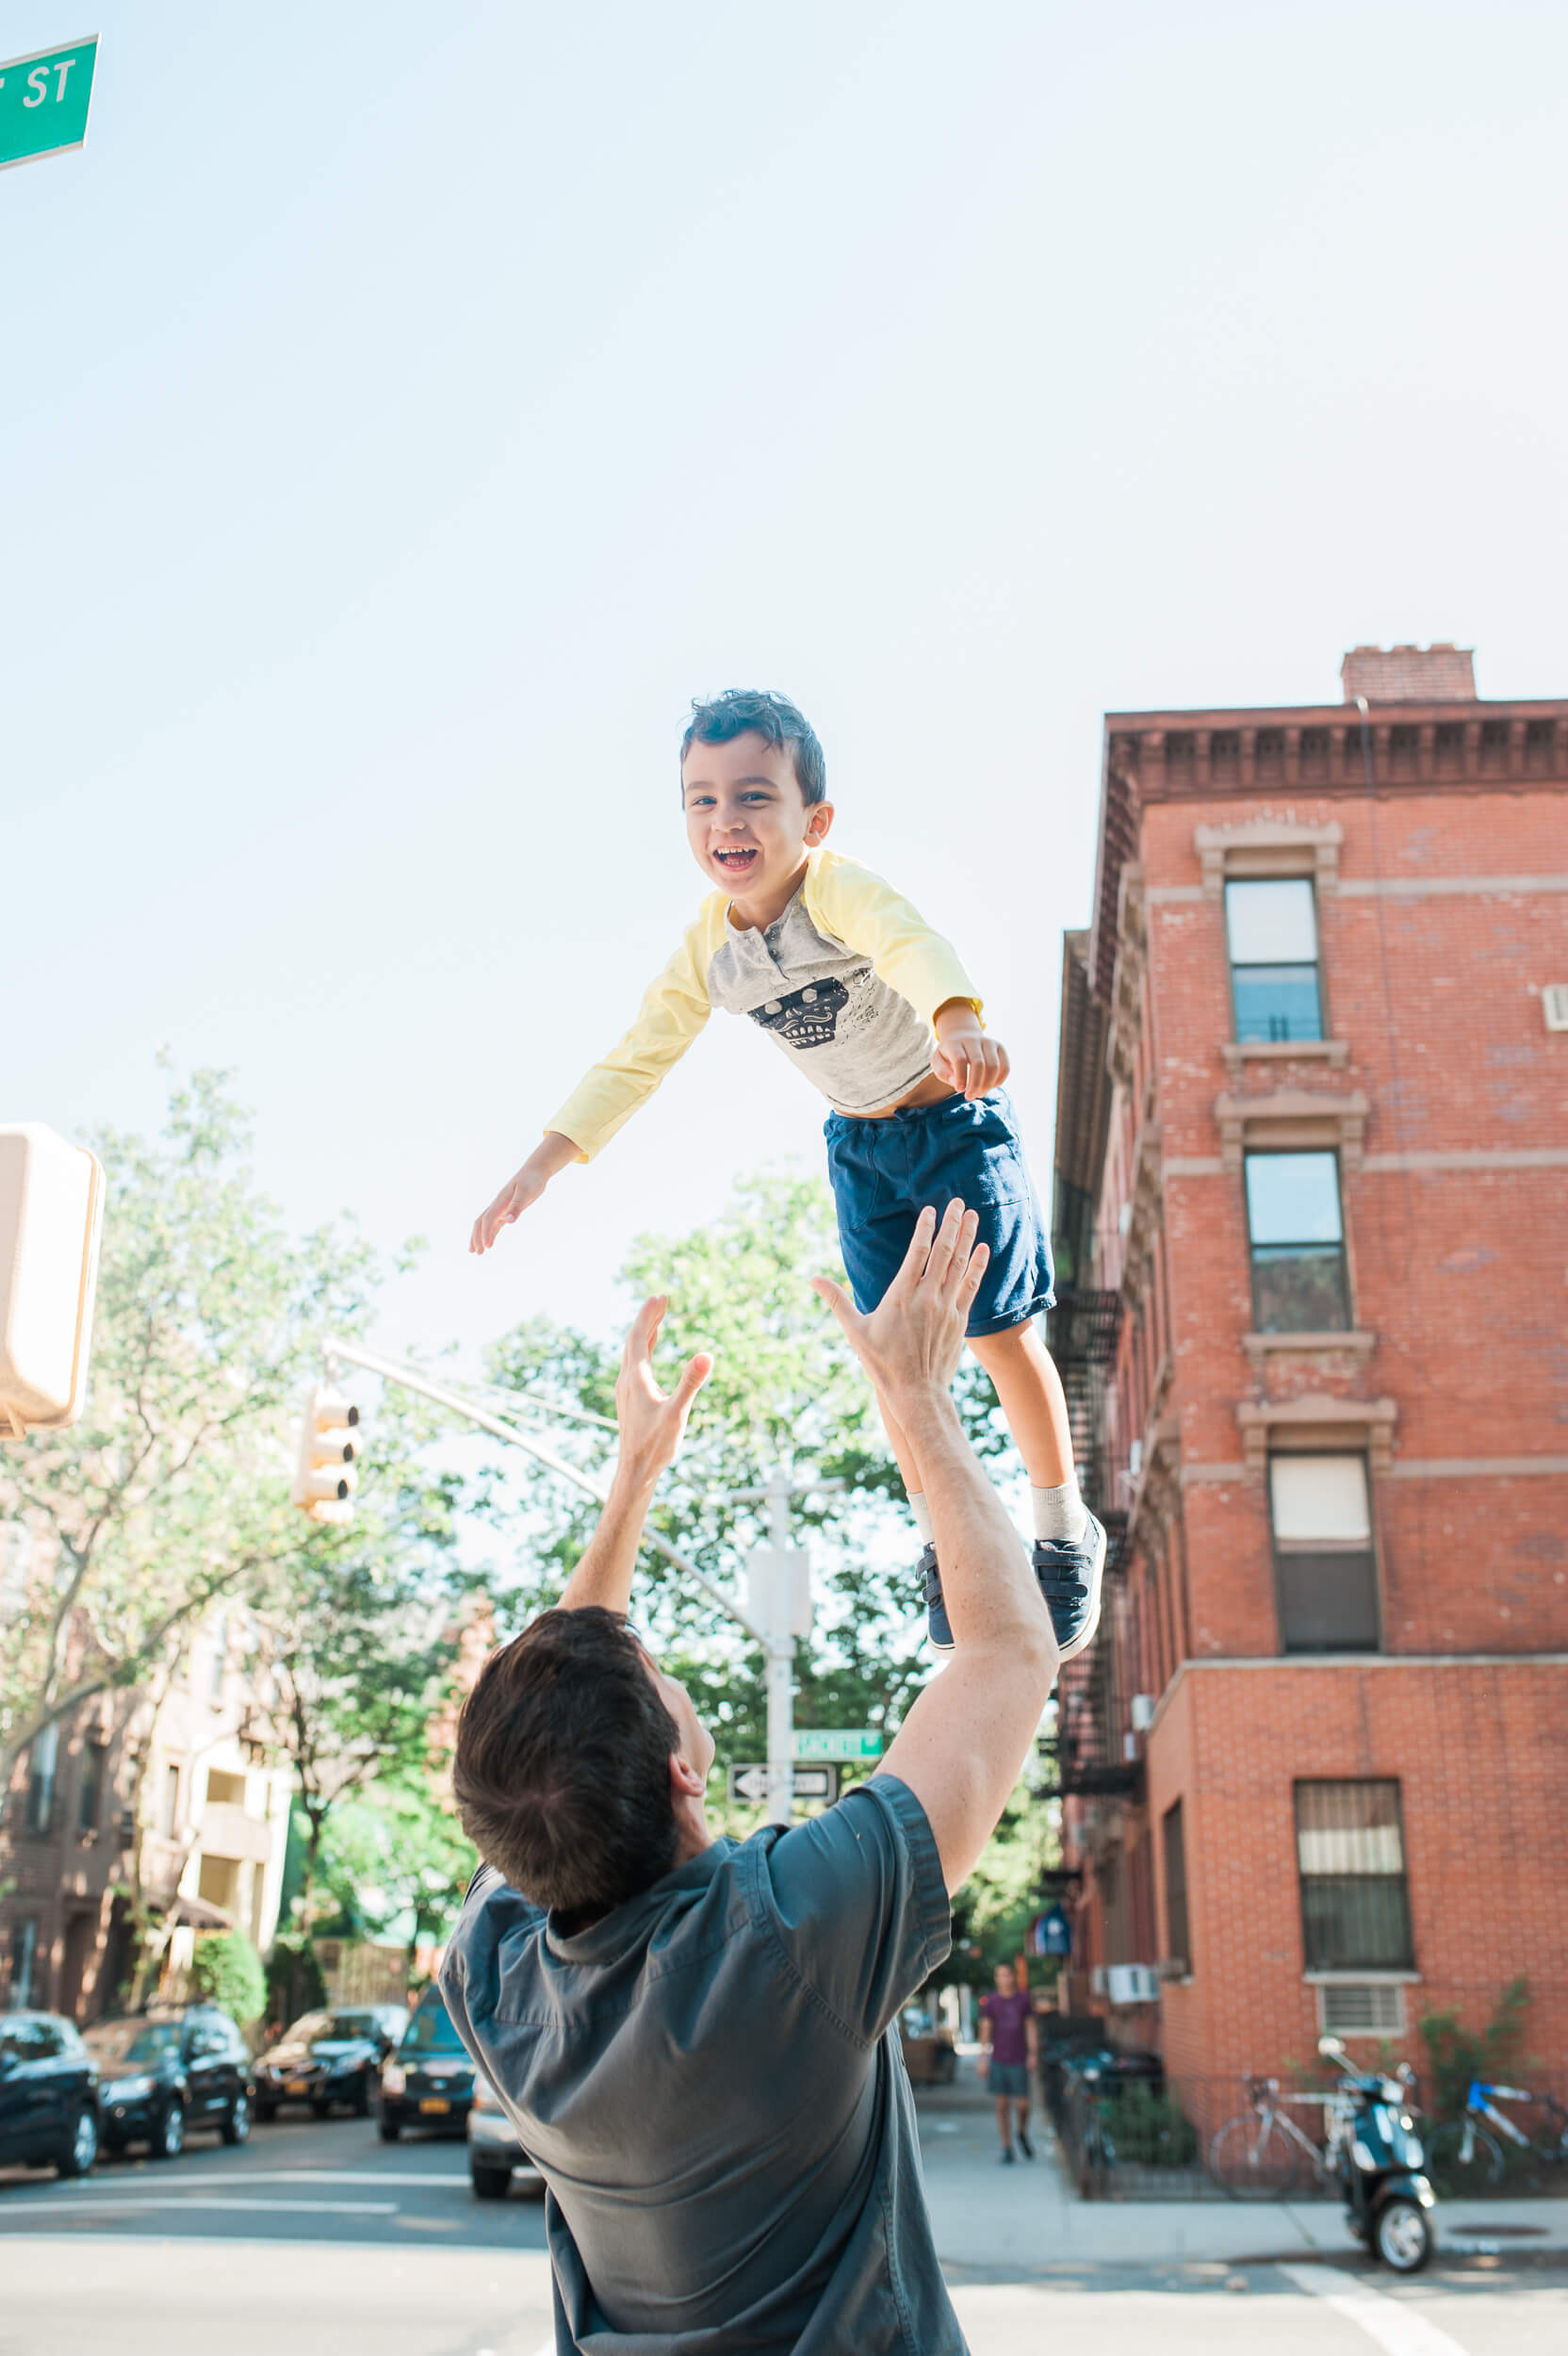 Father tossing son in the air in Cobble Hill Brooklyn New York family photographer lifestyle session in Cobble Hill by Lindsey Victoria Photography